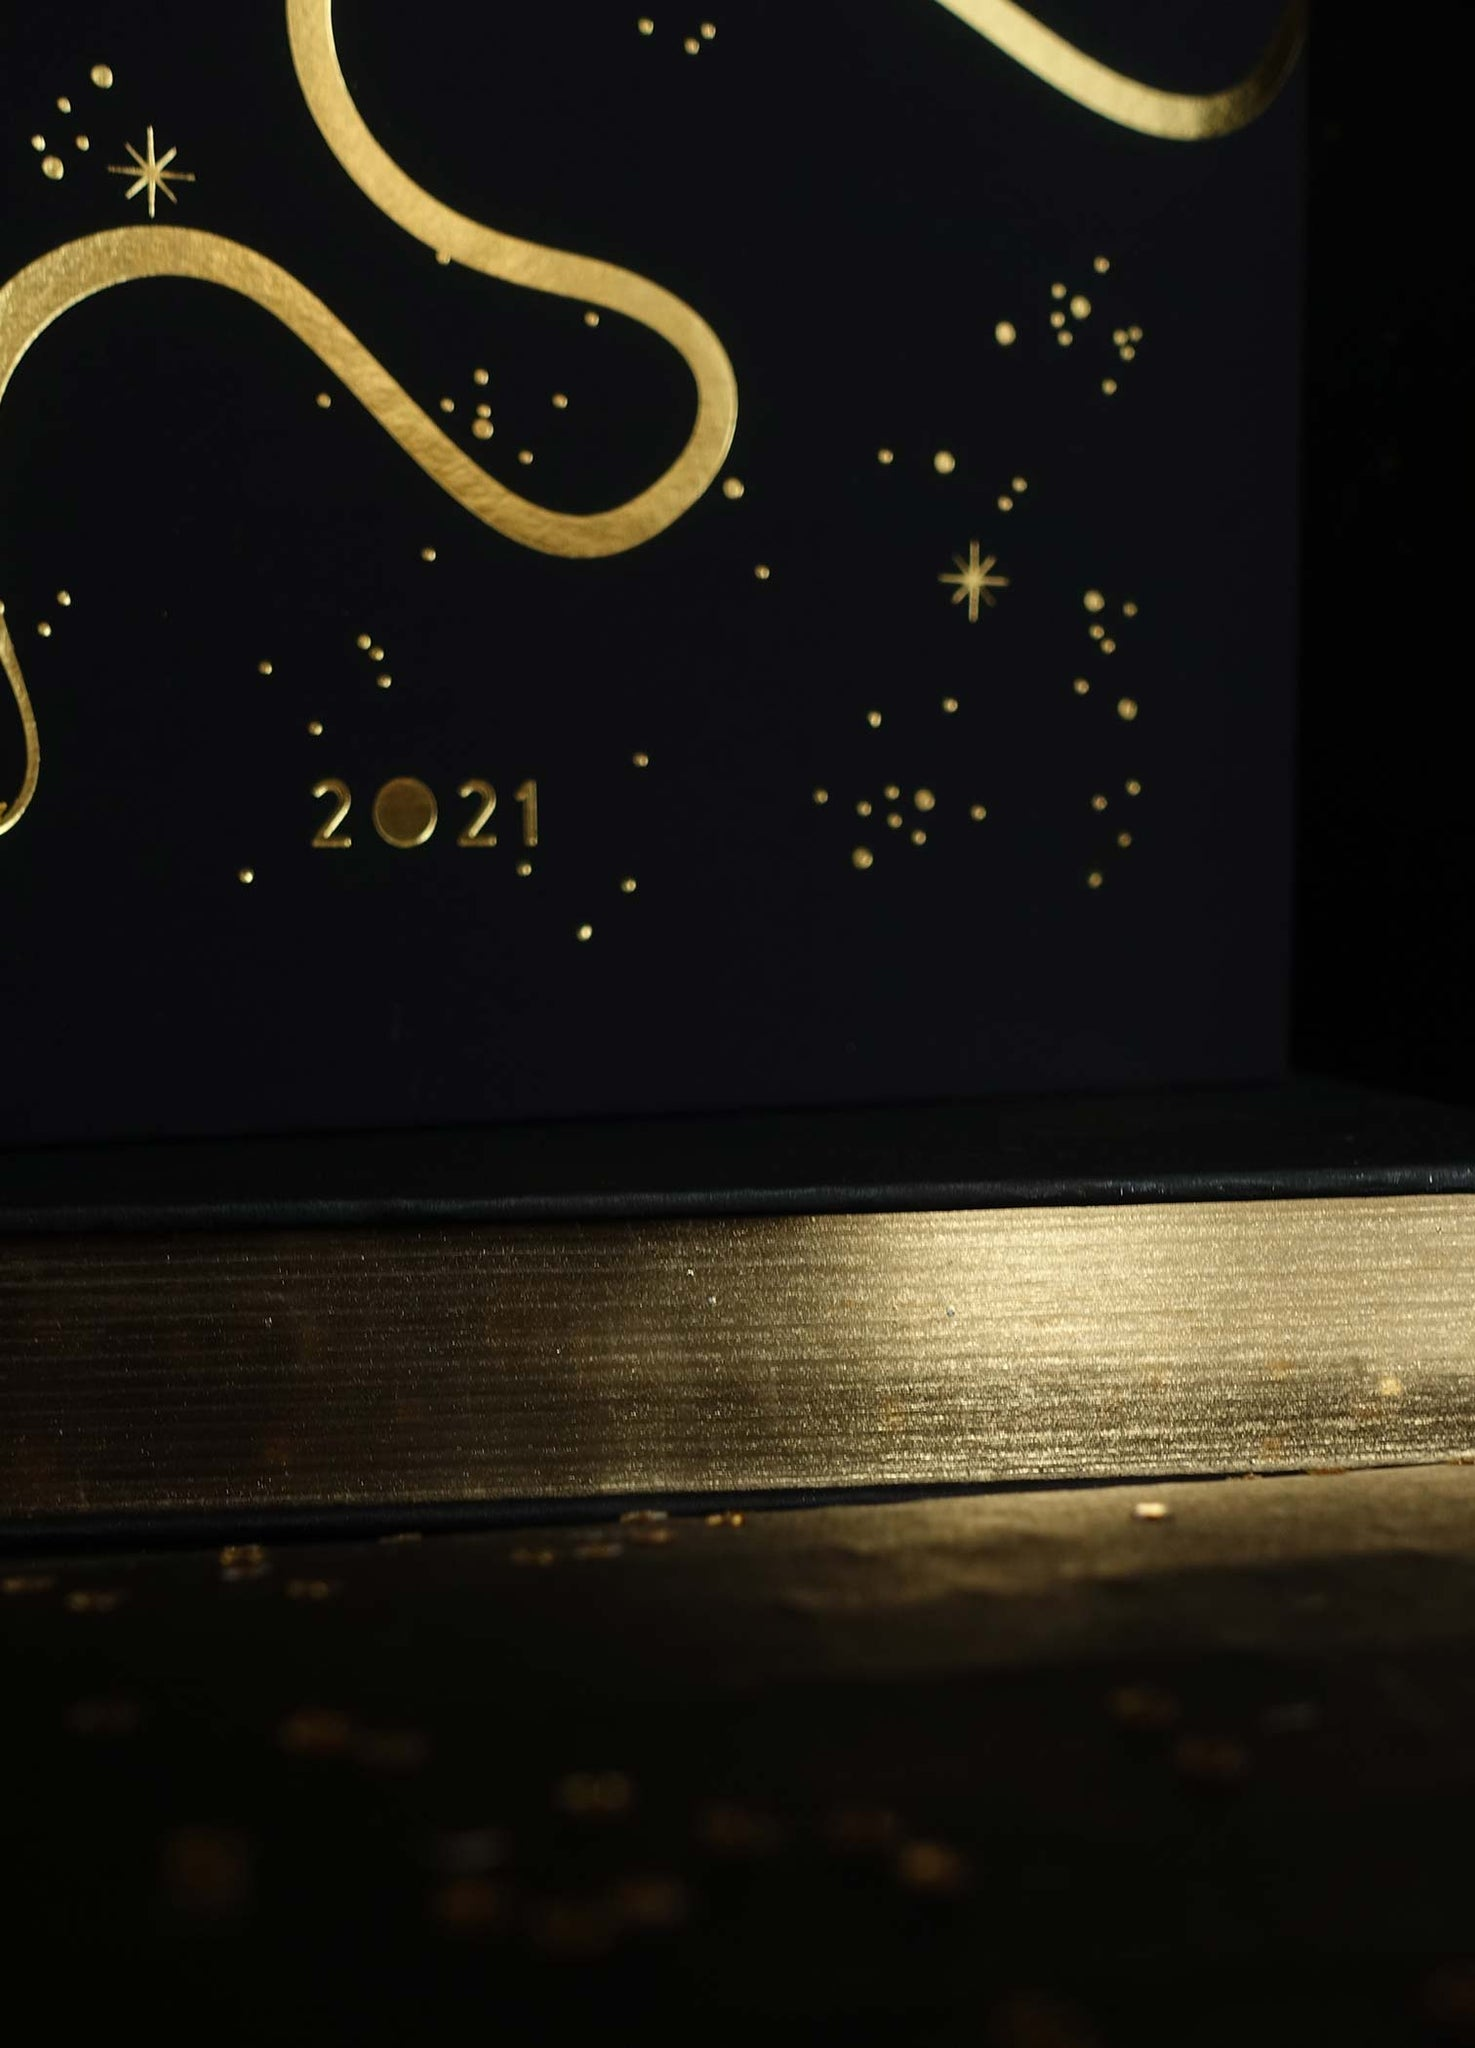 Elaphe Gold Edition 2021 Planner Calendar Black with gold foil by Cocorrina Shop